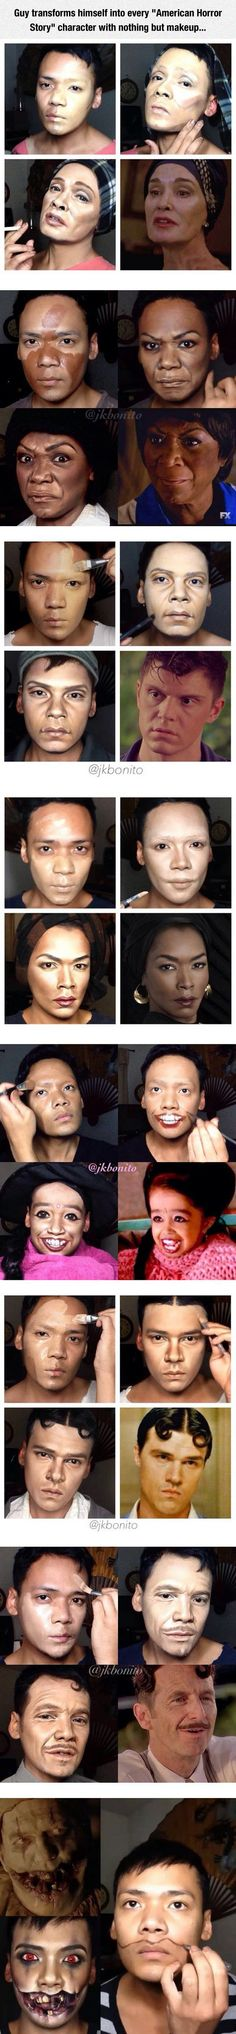 He Is A Real Make Up Artist